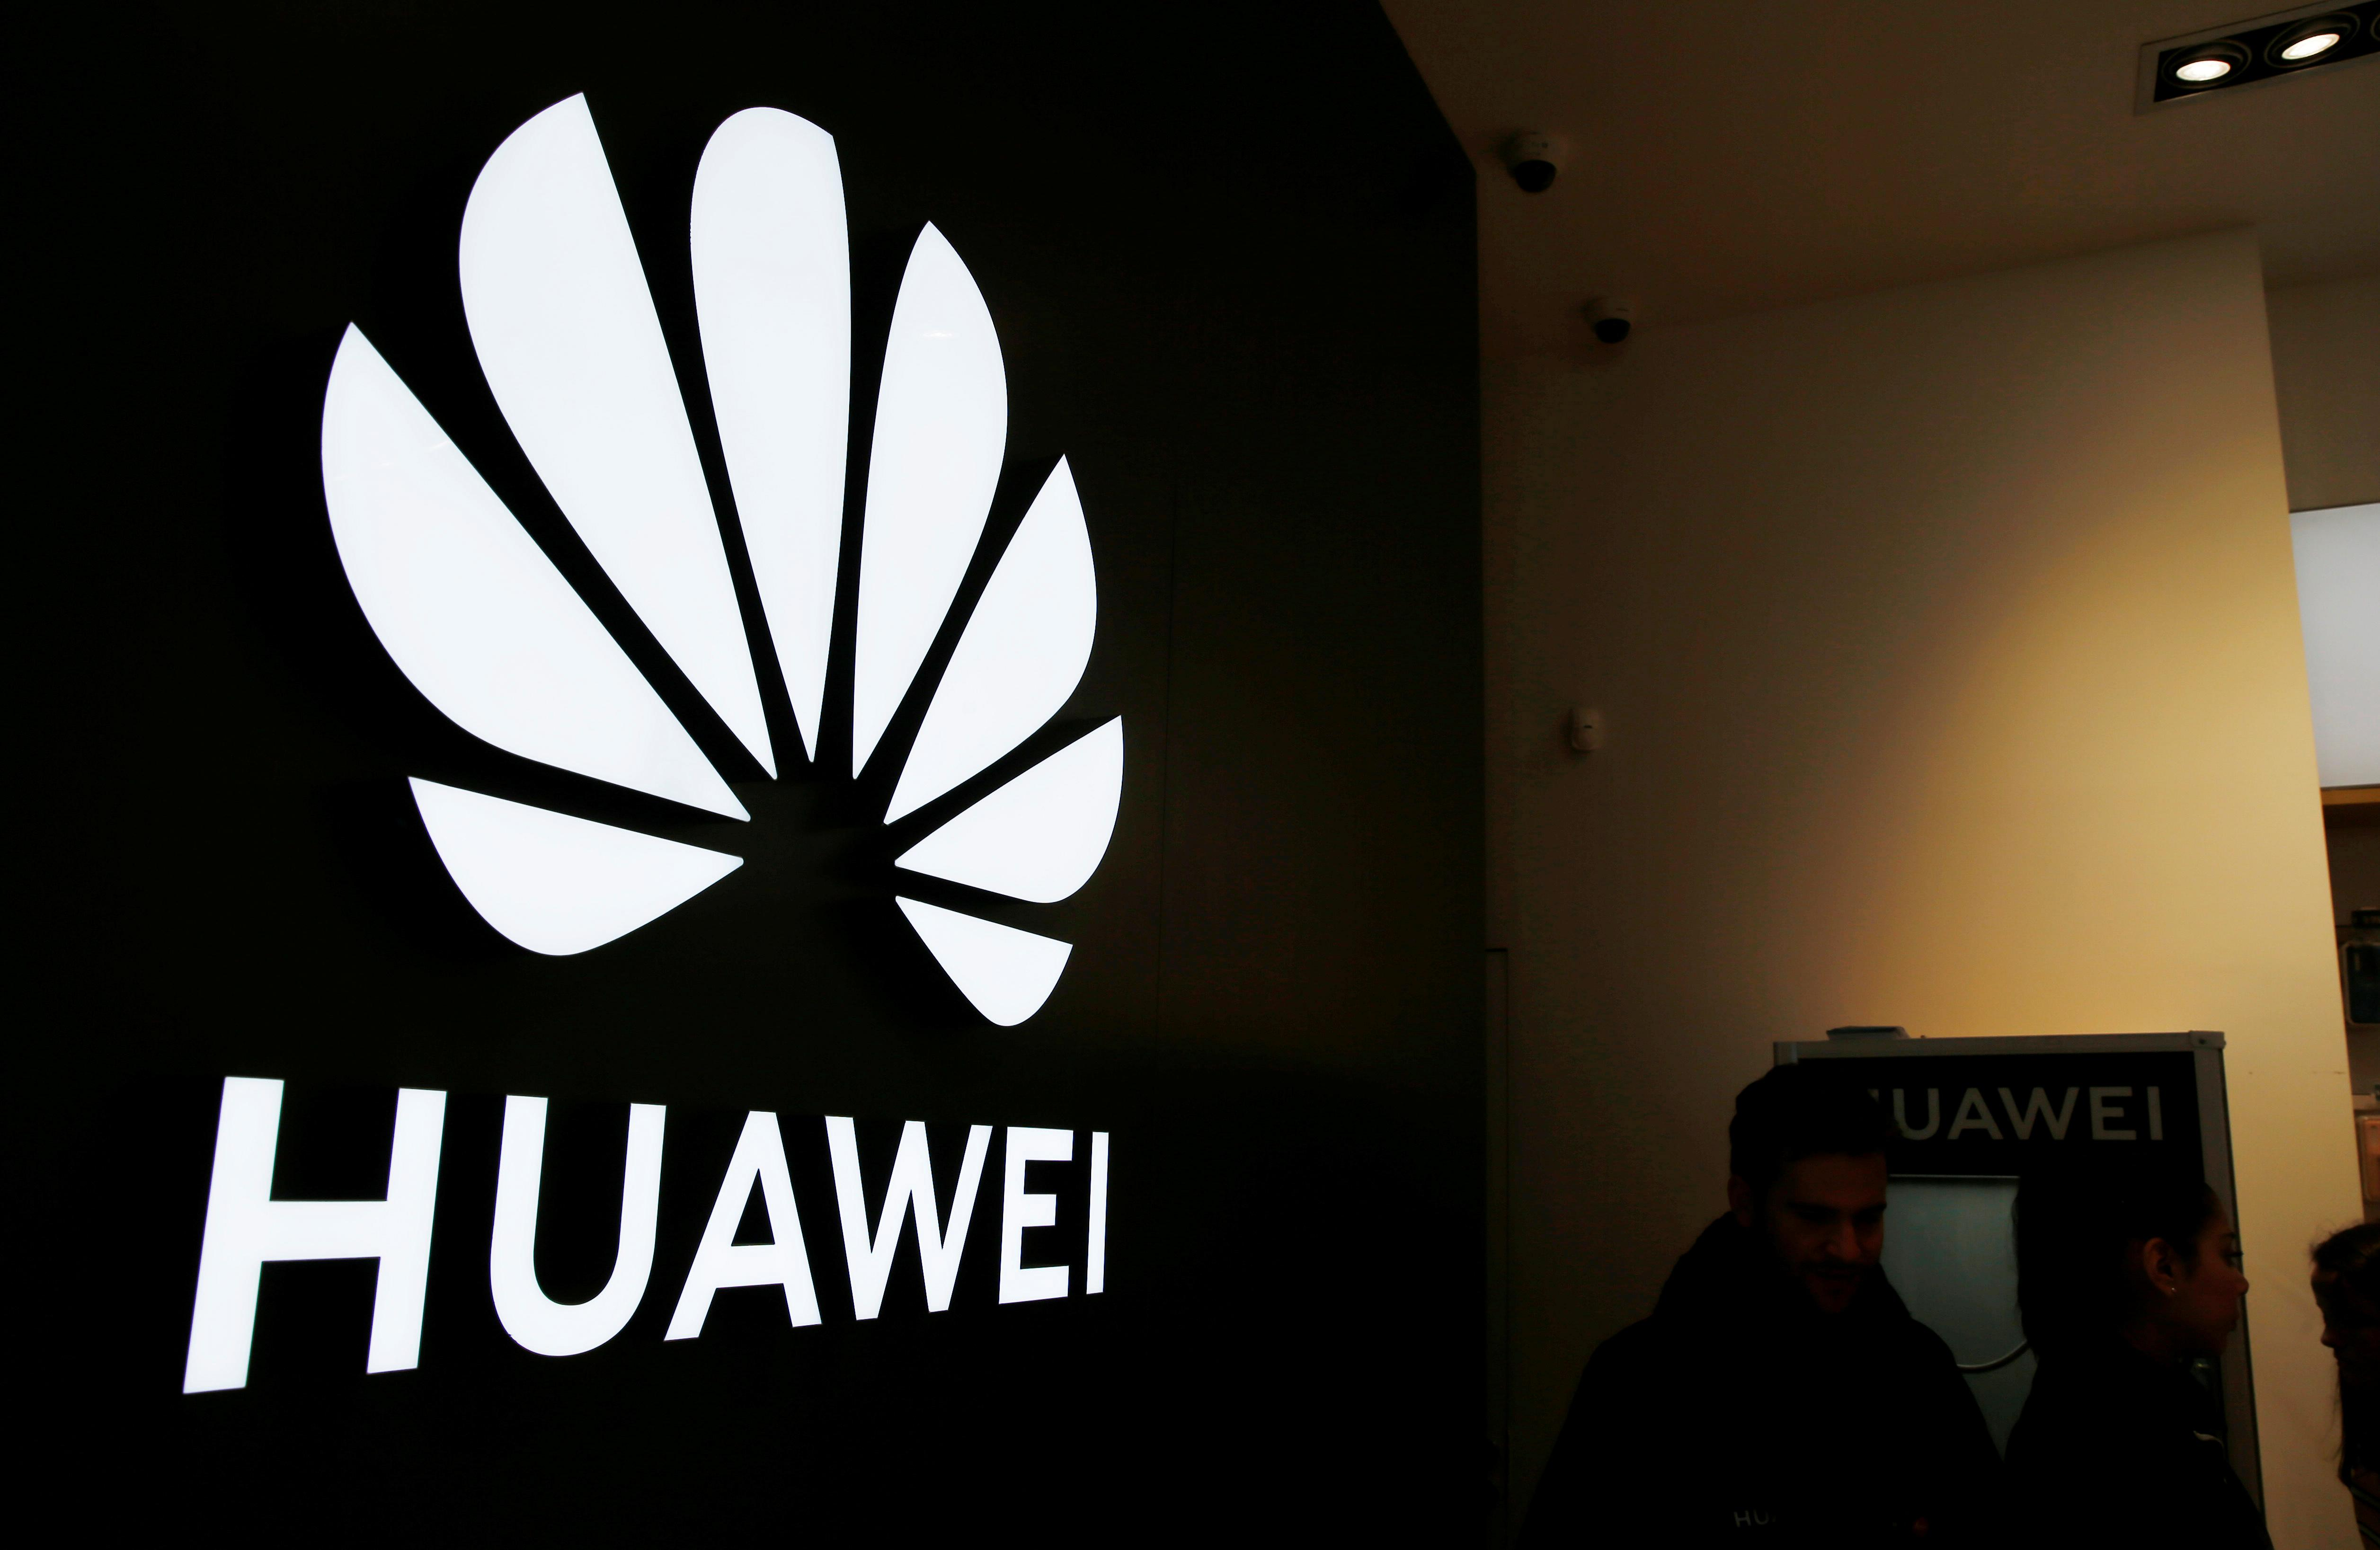 Britain to cut Huawei decision from telecoms review - sources